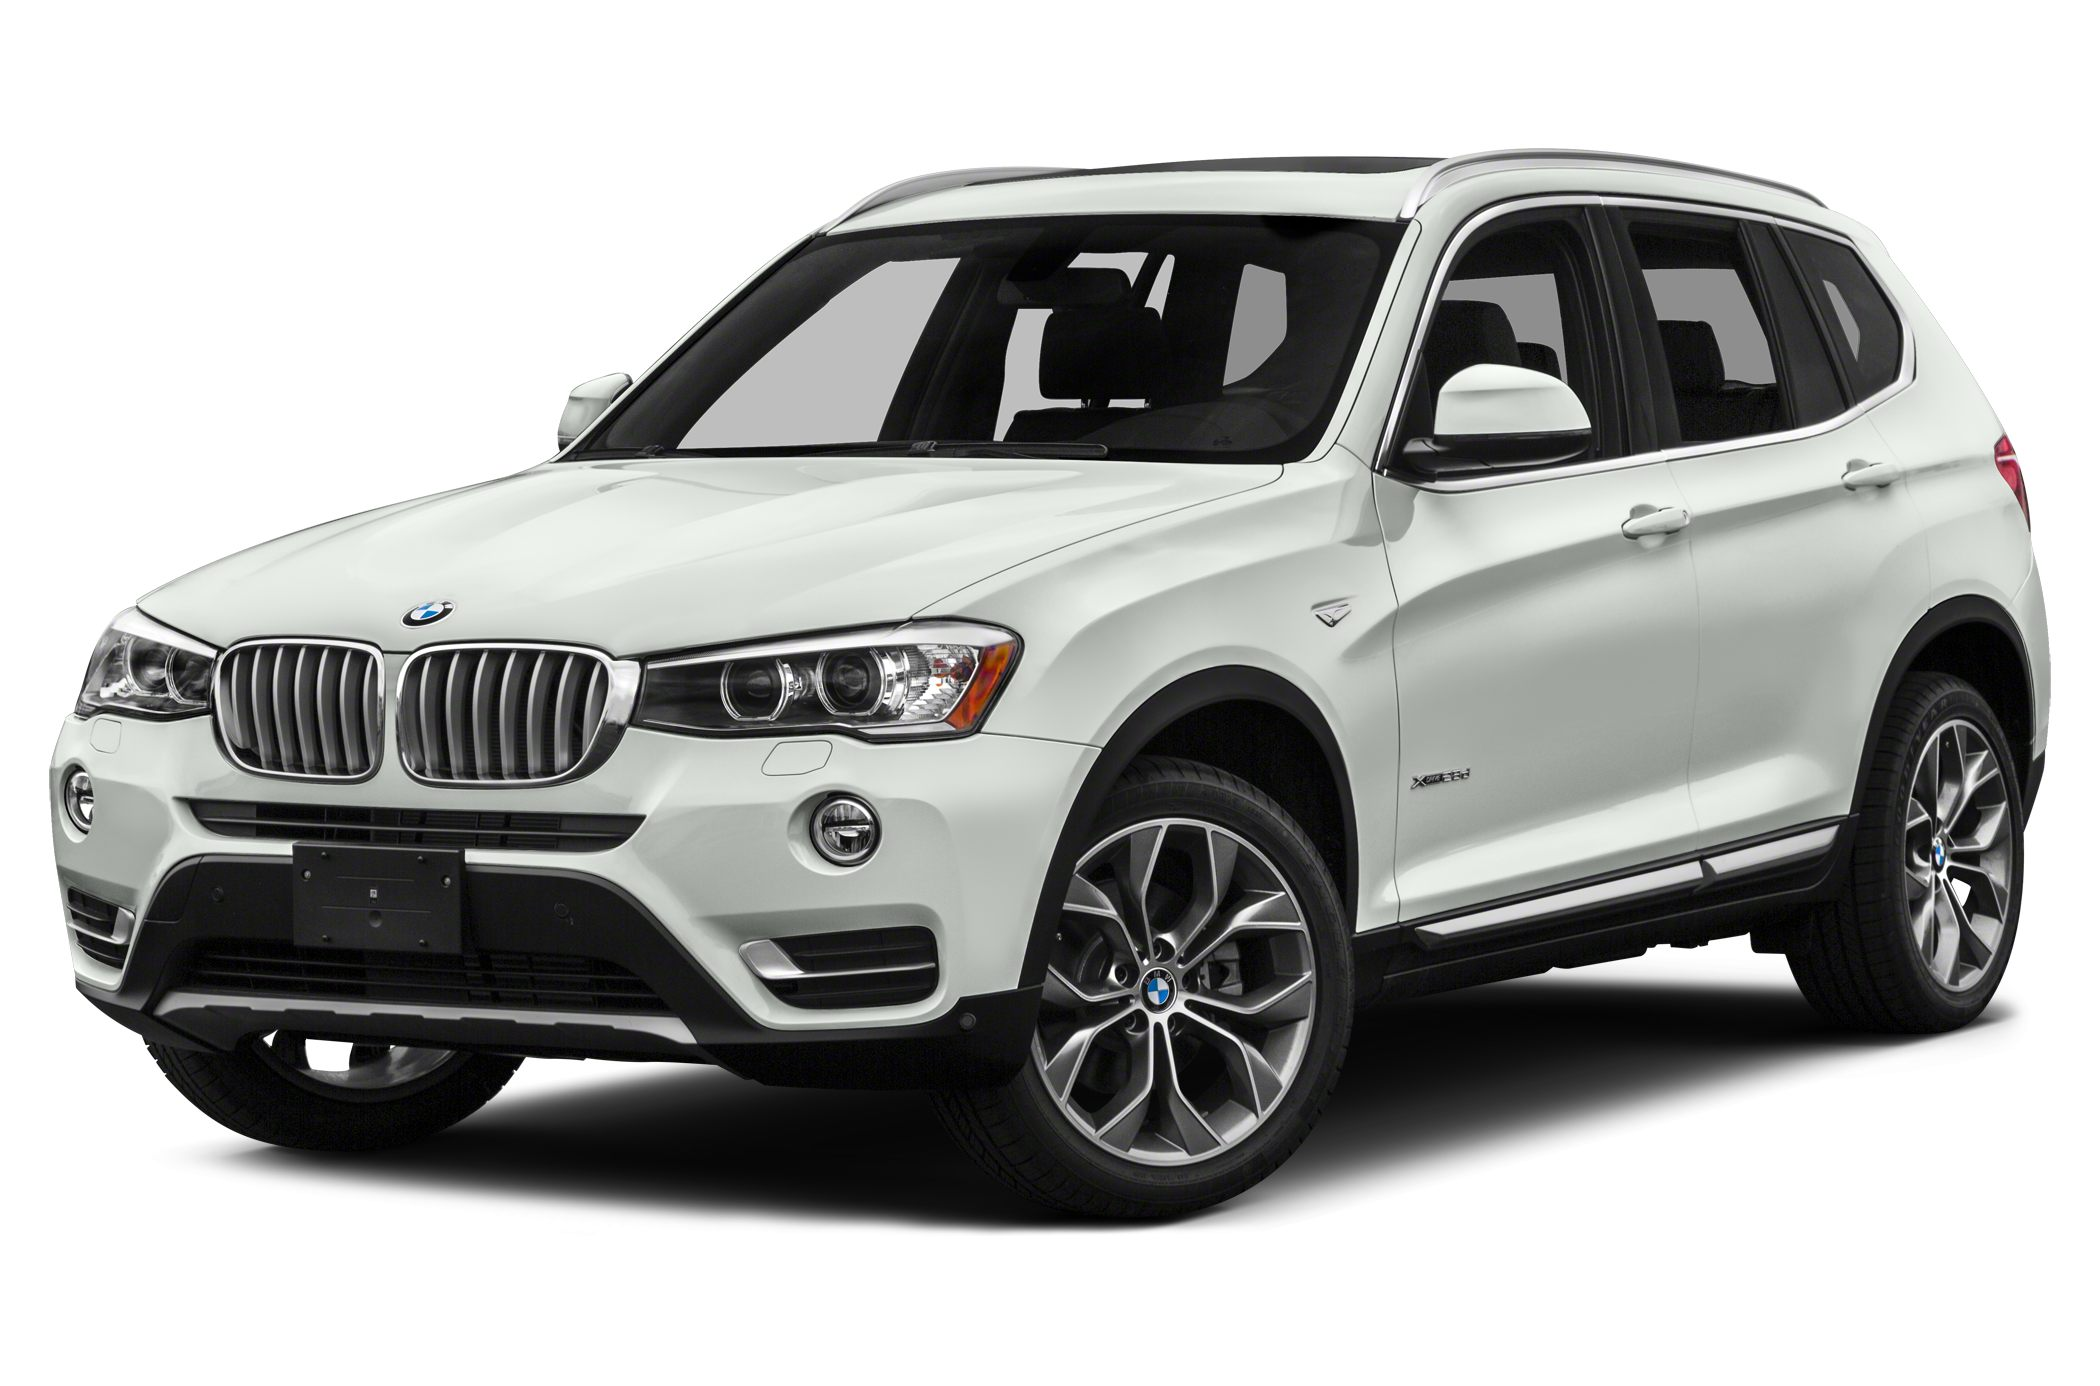 2015 bmw x3 arrives with tweaked styling diesel option update. Black Bedroom Furniture Sets. Home Design Ideas